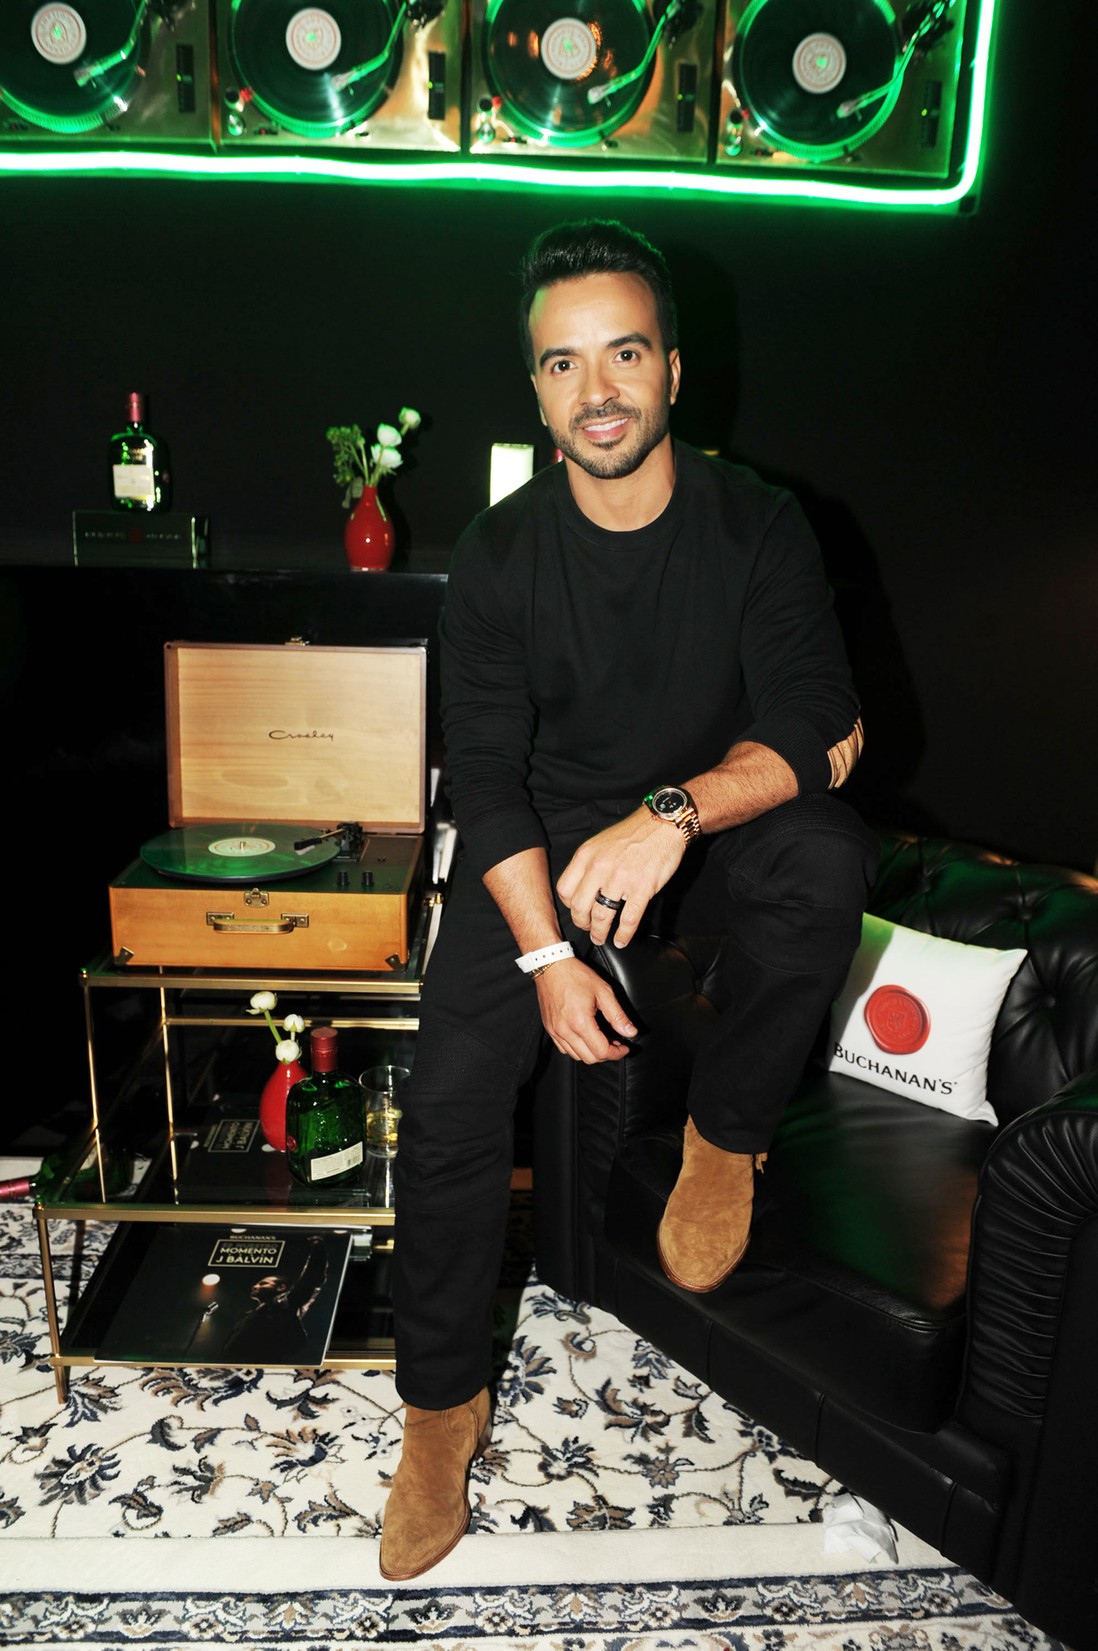 Luis Fonsi at the Casa Buchanan's Billboard Latin Kickoff Party in Miami on April 26, 2017.